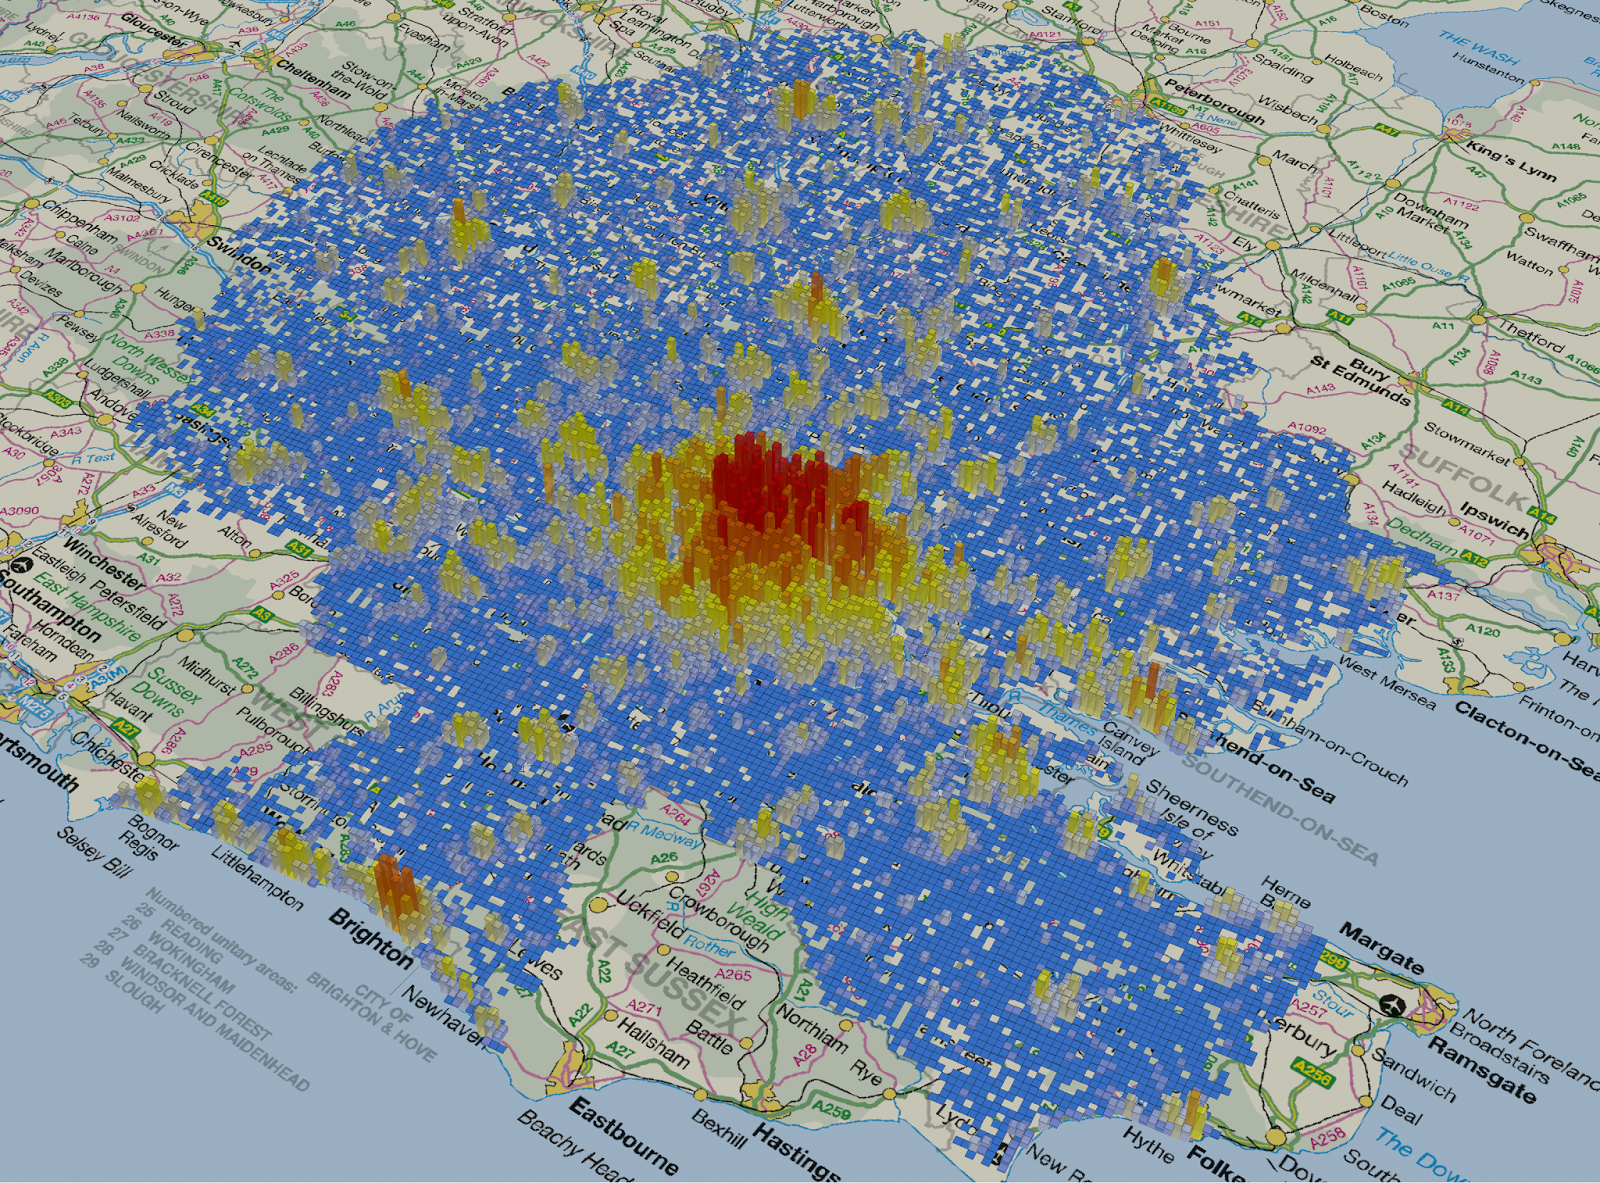 Population density for 1km cells